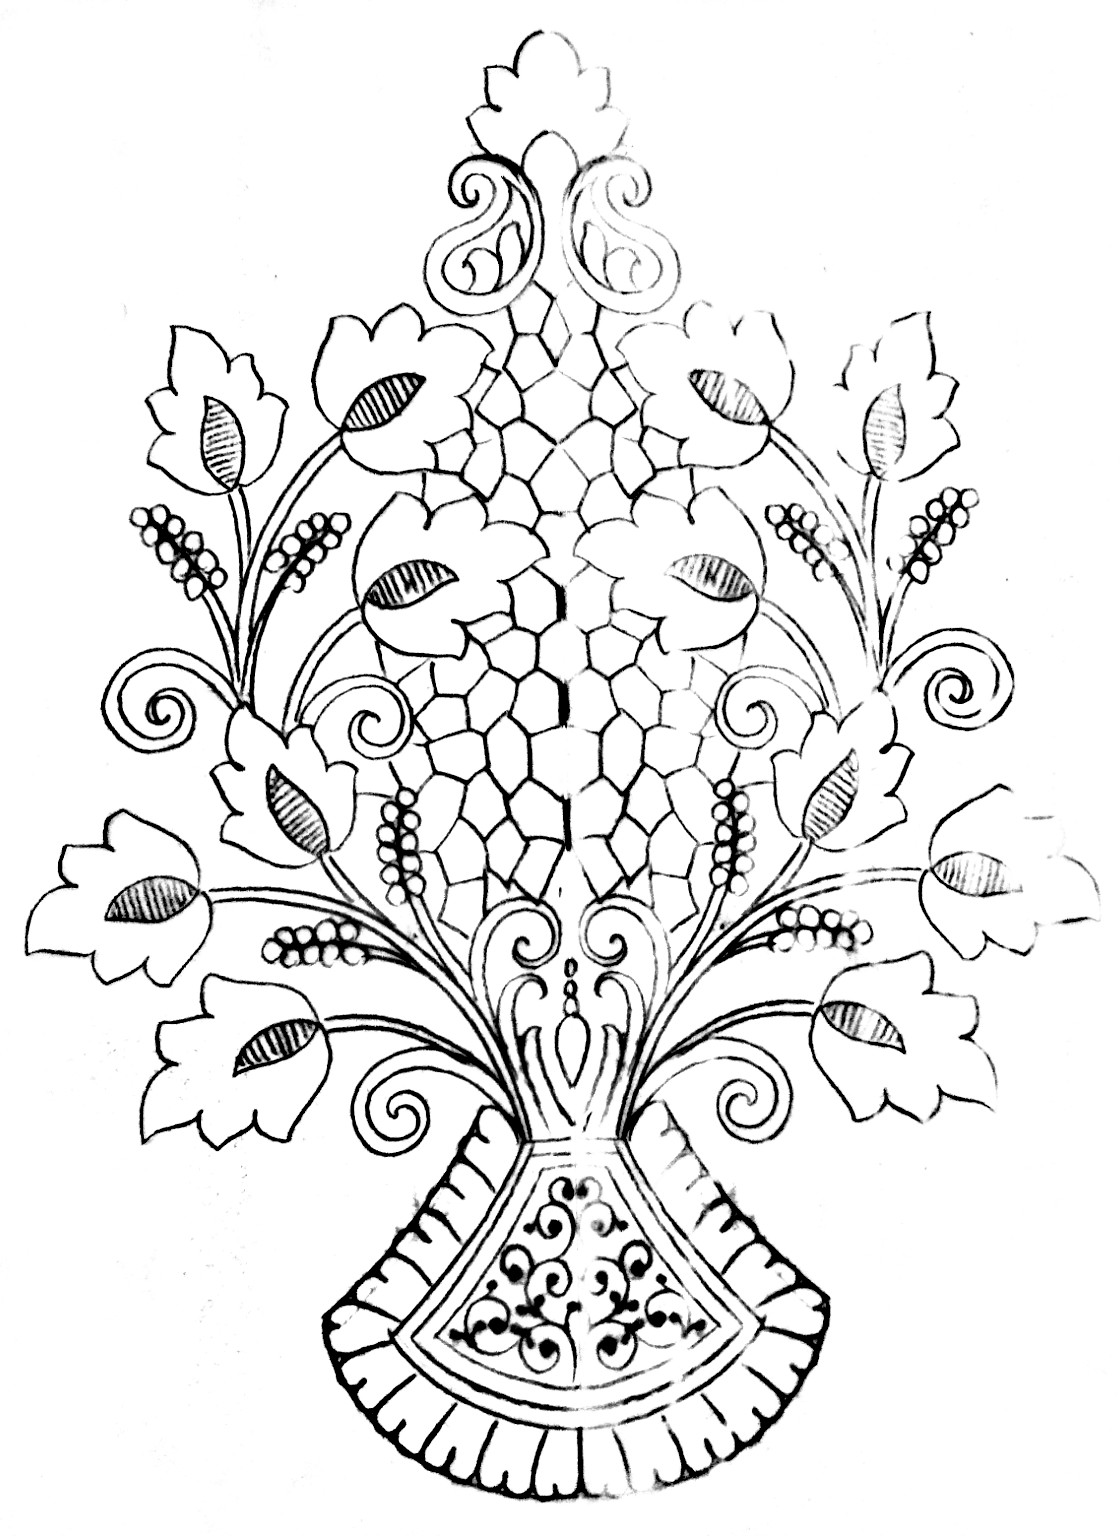 Free hand embroidery images download/Butta embroidery flowers design drawing on tracing paper.